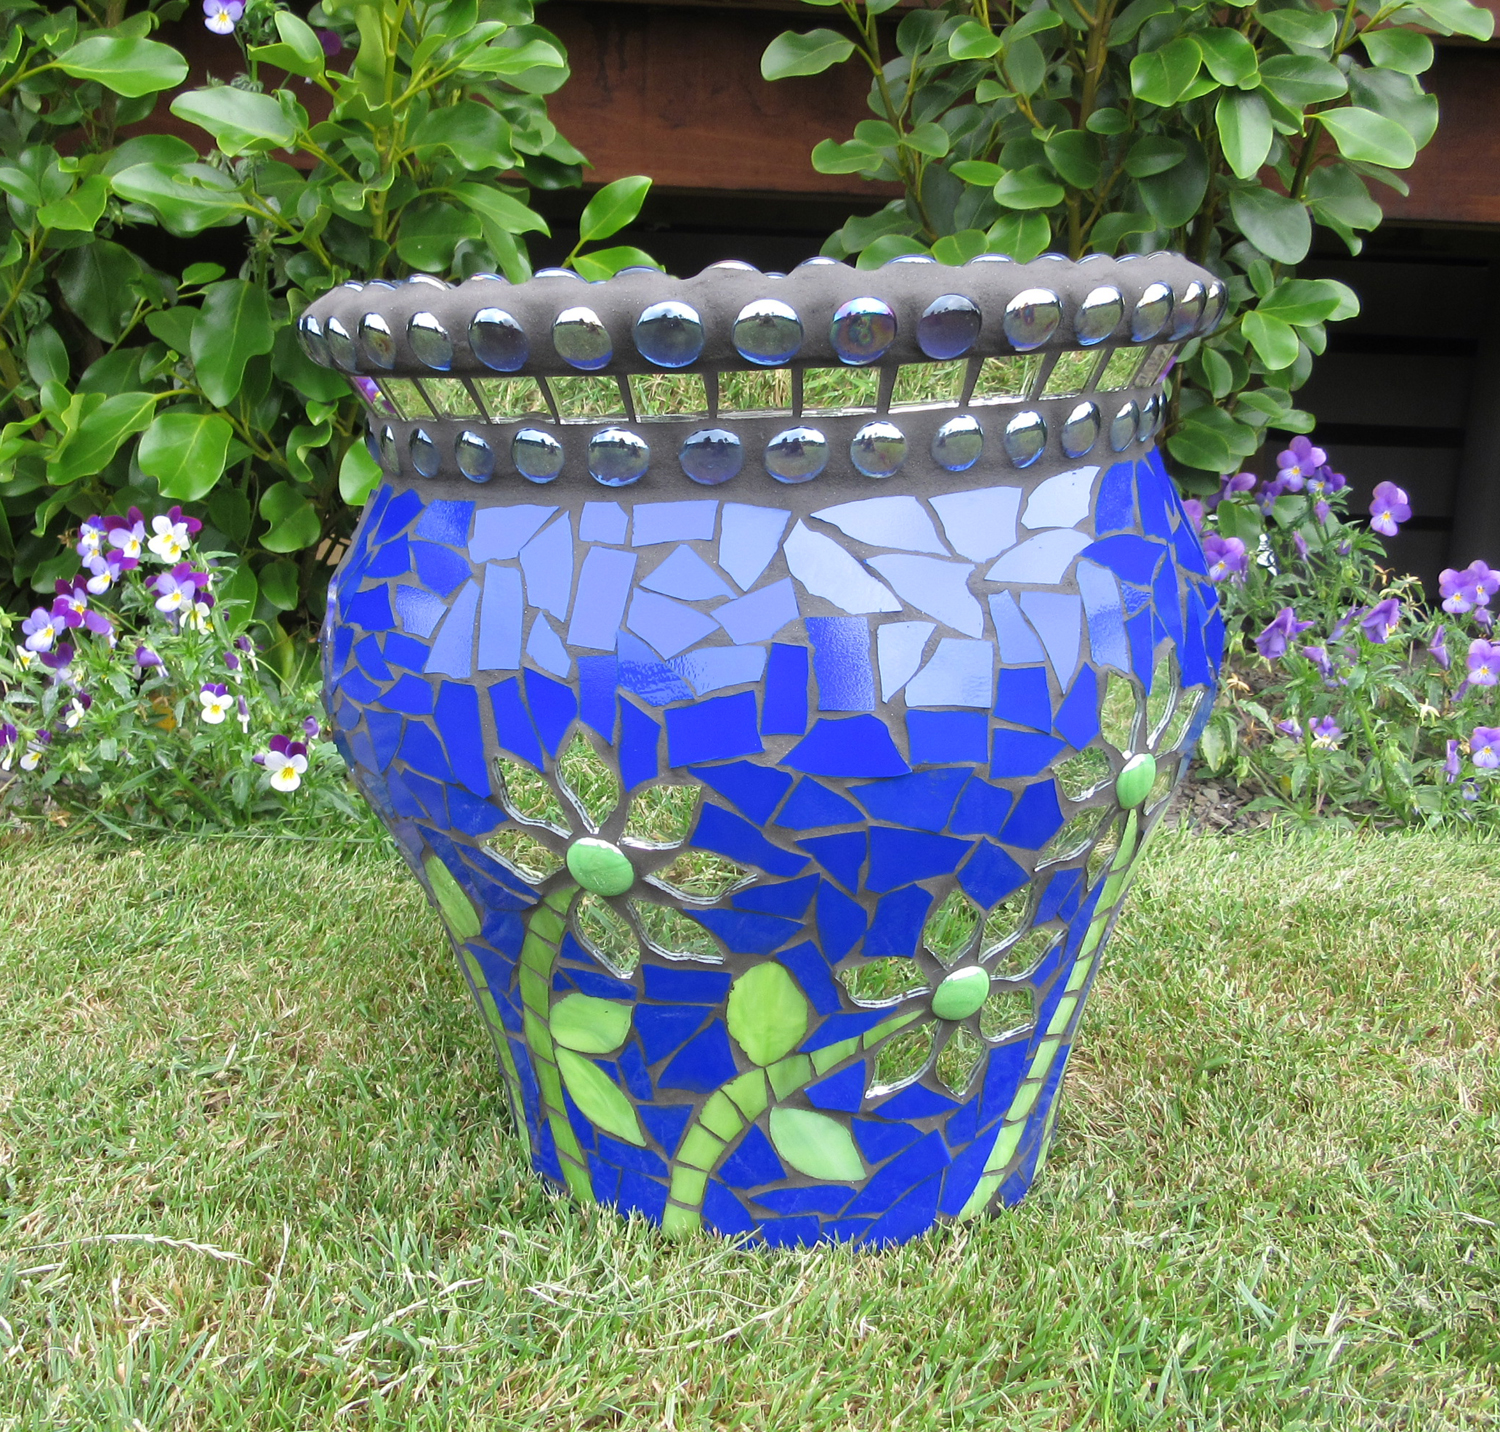 Glass mosaic pot by artist Sharon Carroll